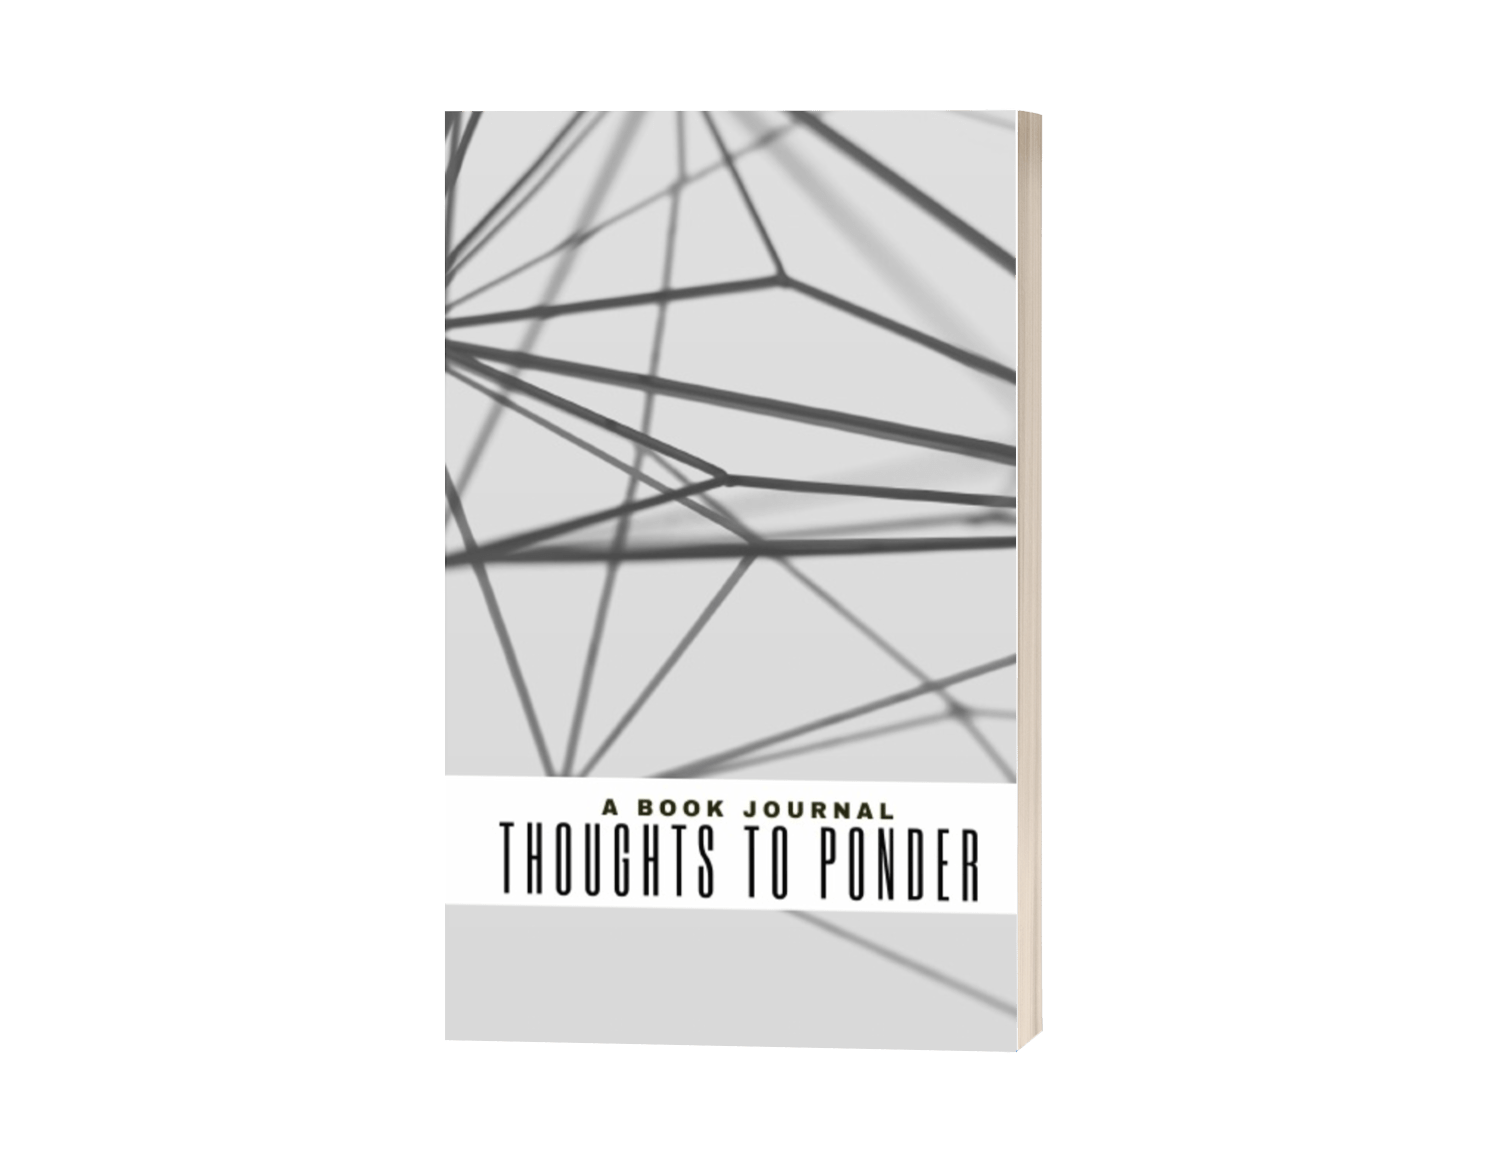 A Book Journal: Thoughts to Ponder